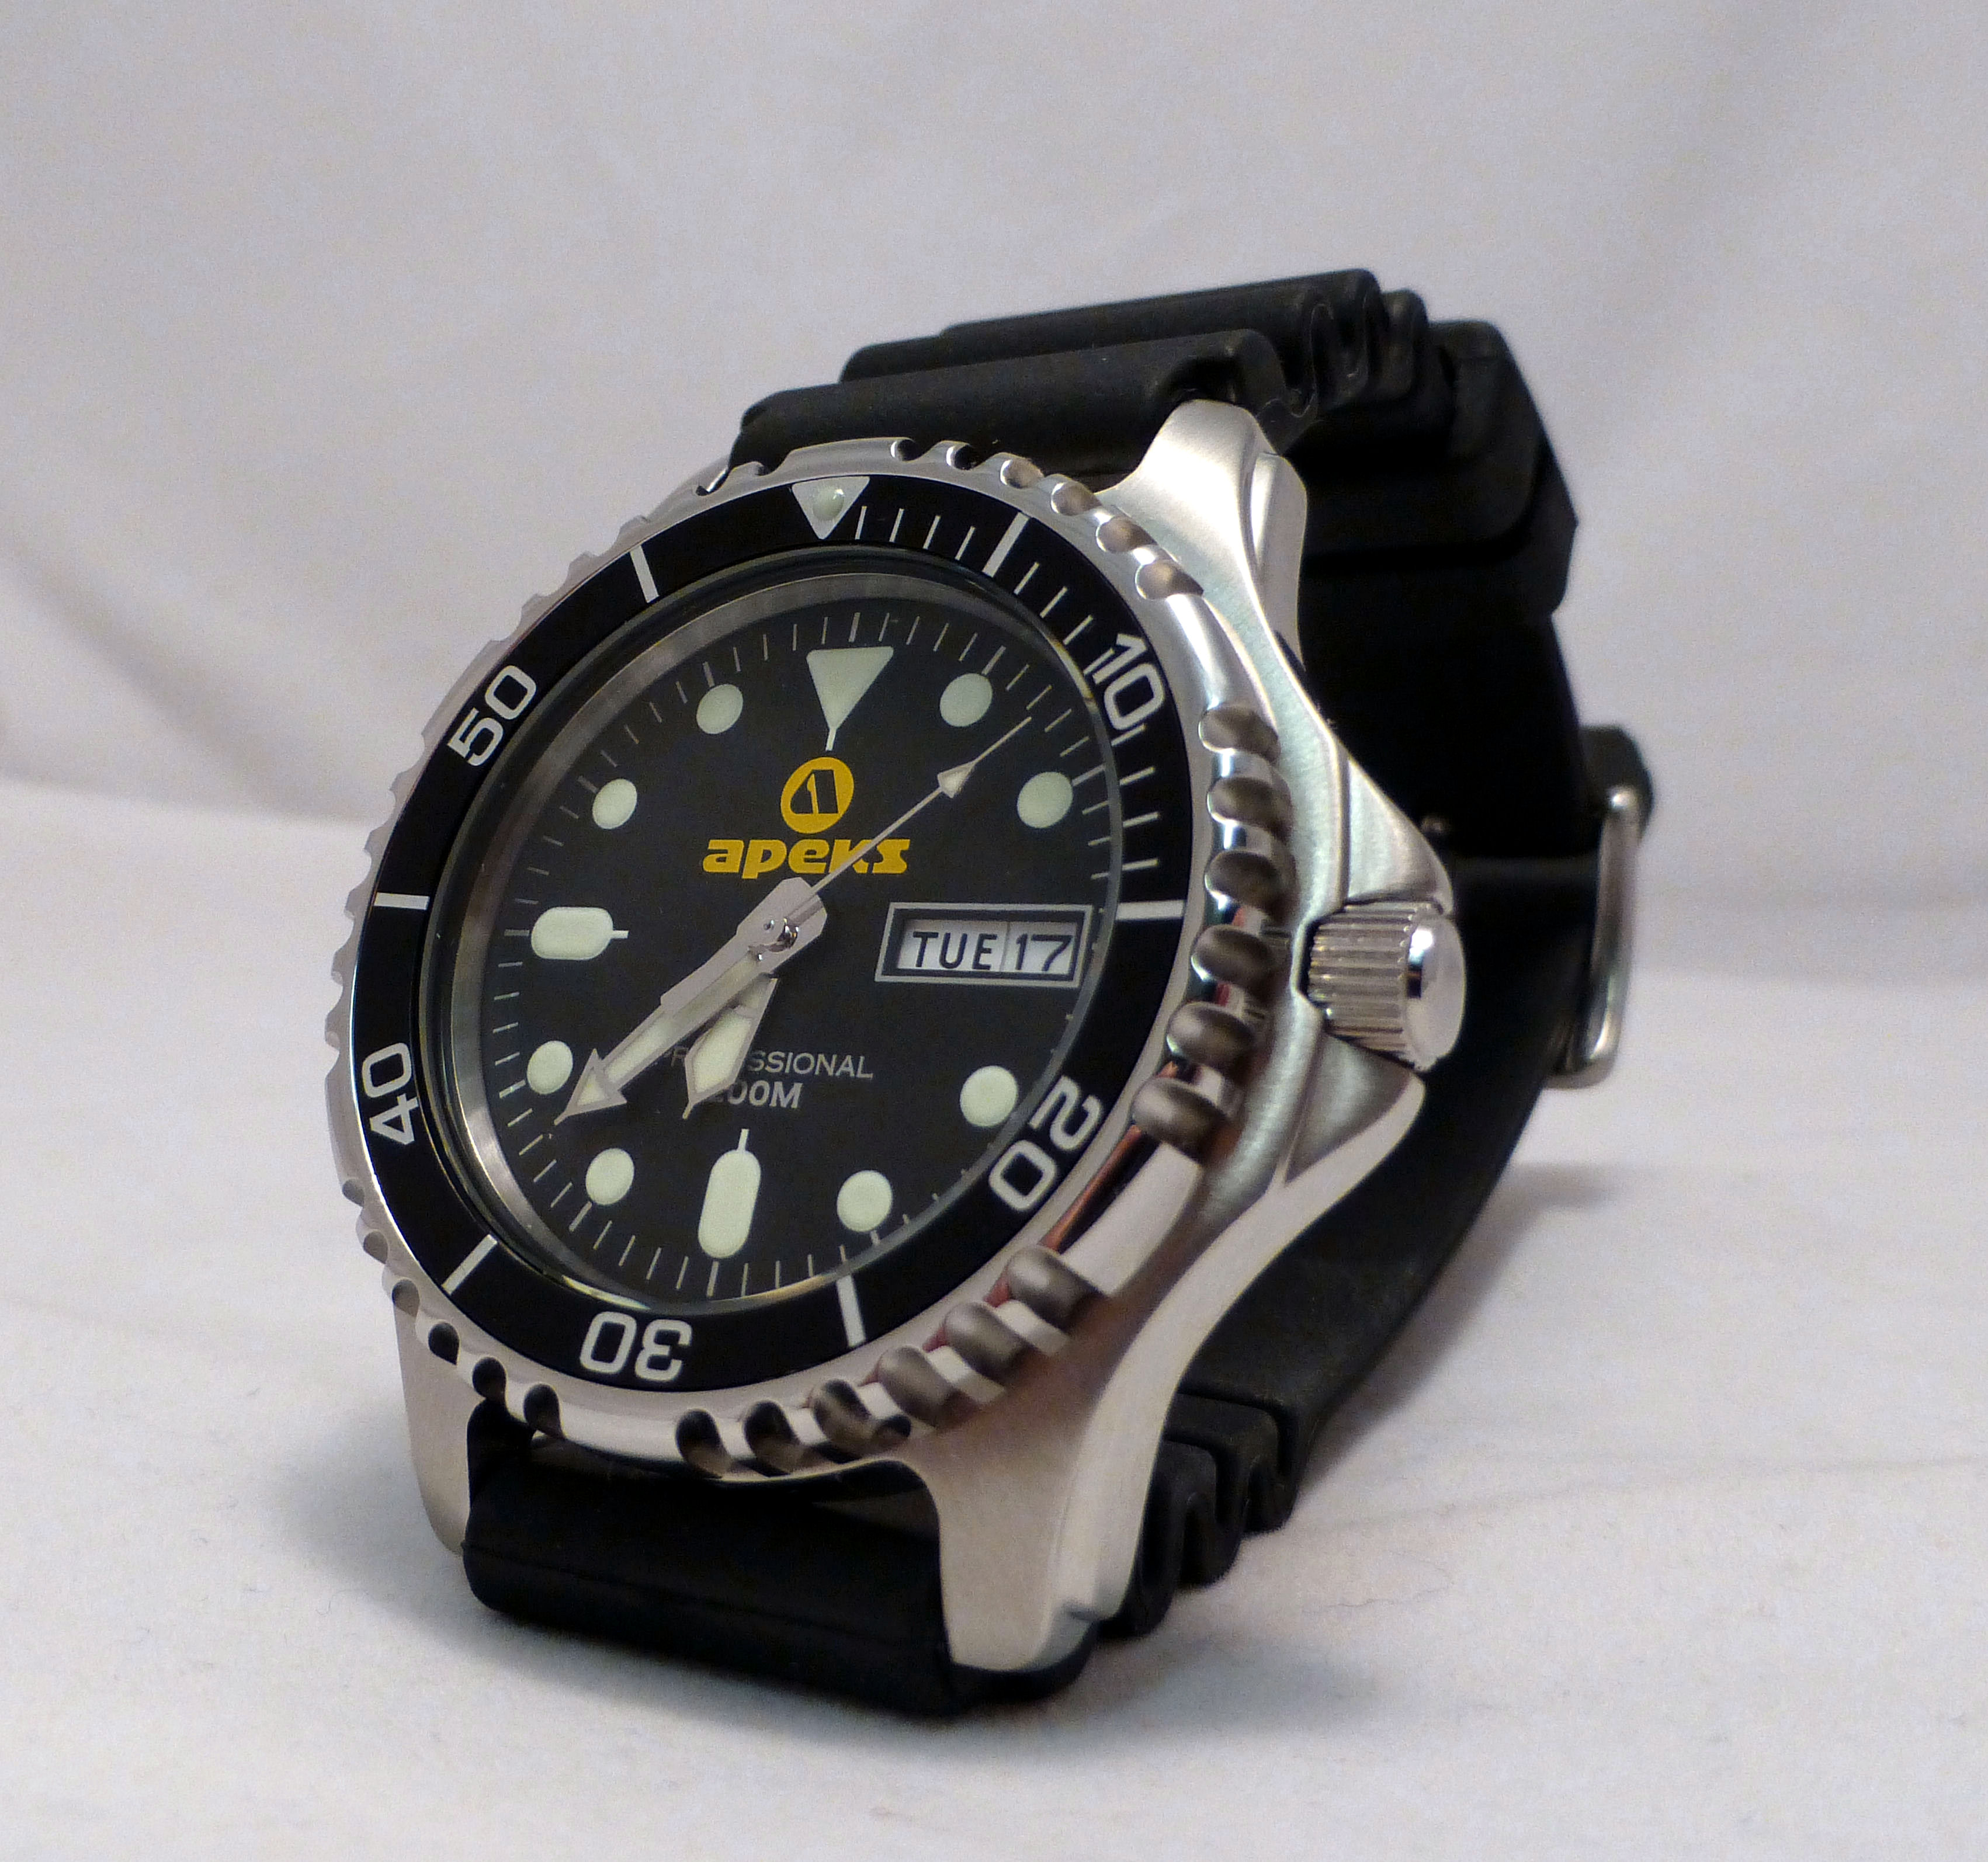 best value diver watch space apeks ap0406 mens 200m professional dive watch